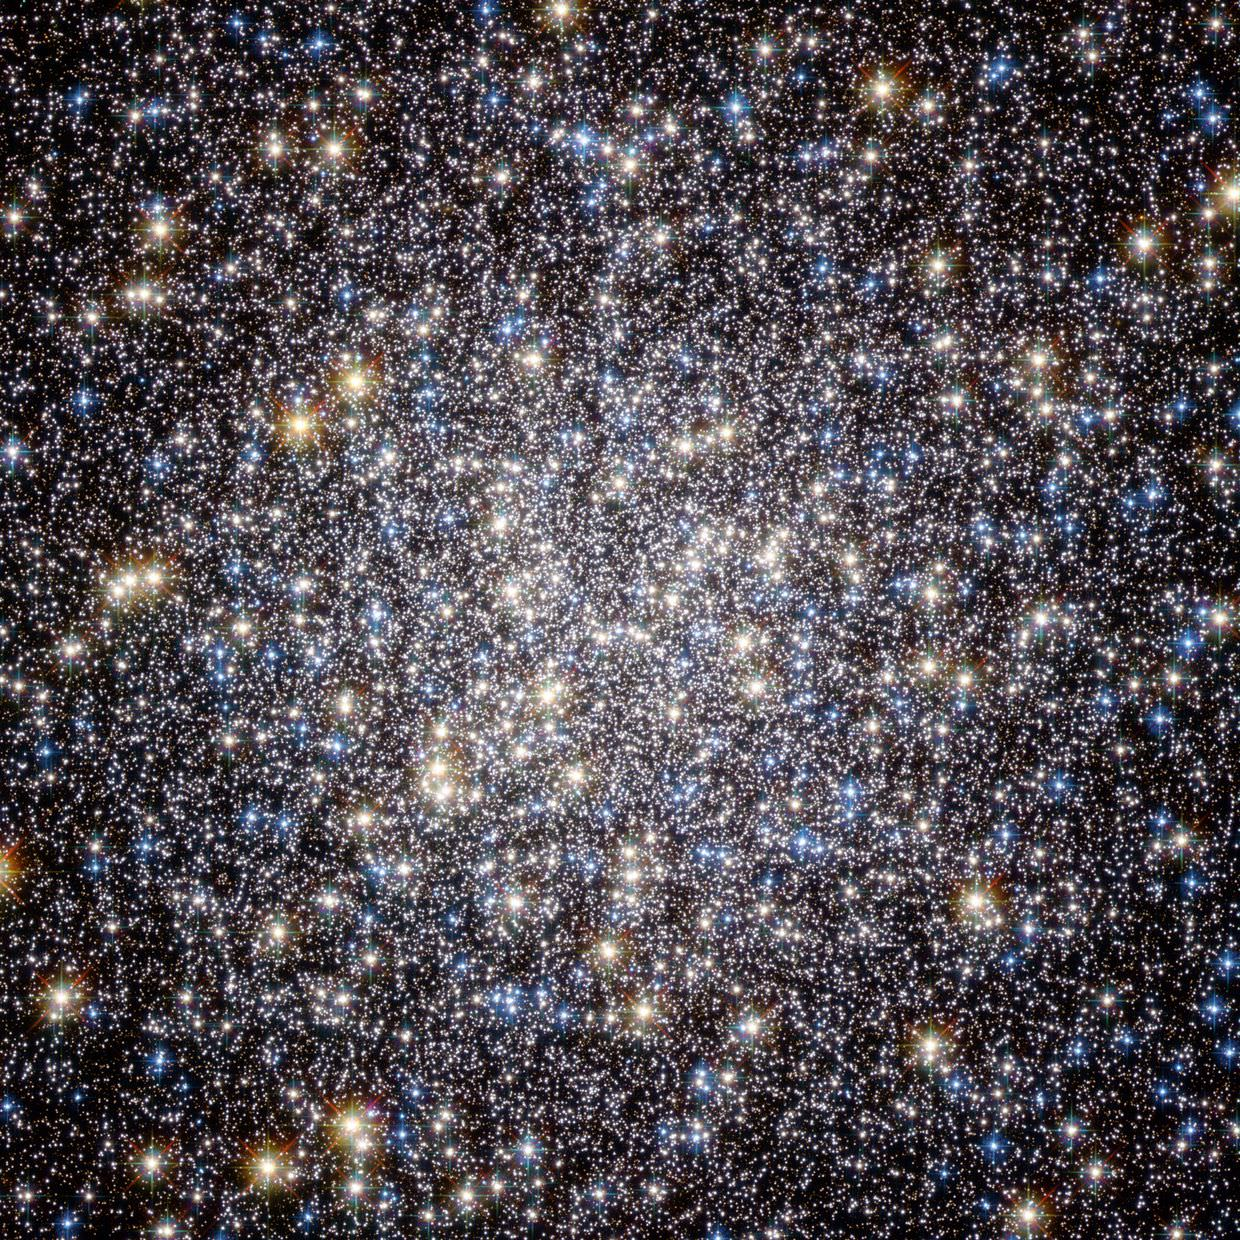 """Heart of M13 Hercules Globular Cluster"" by ESA/Hubble and NASA"